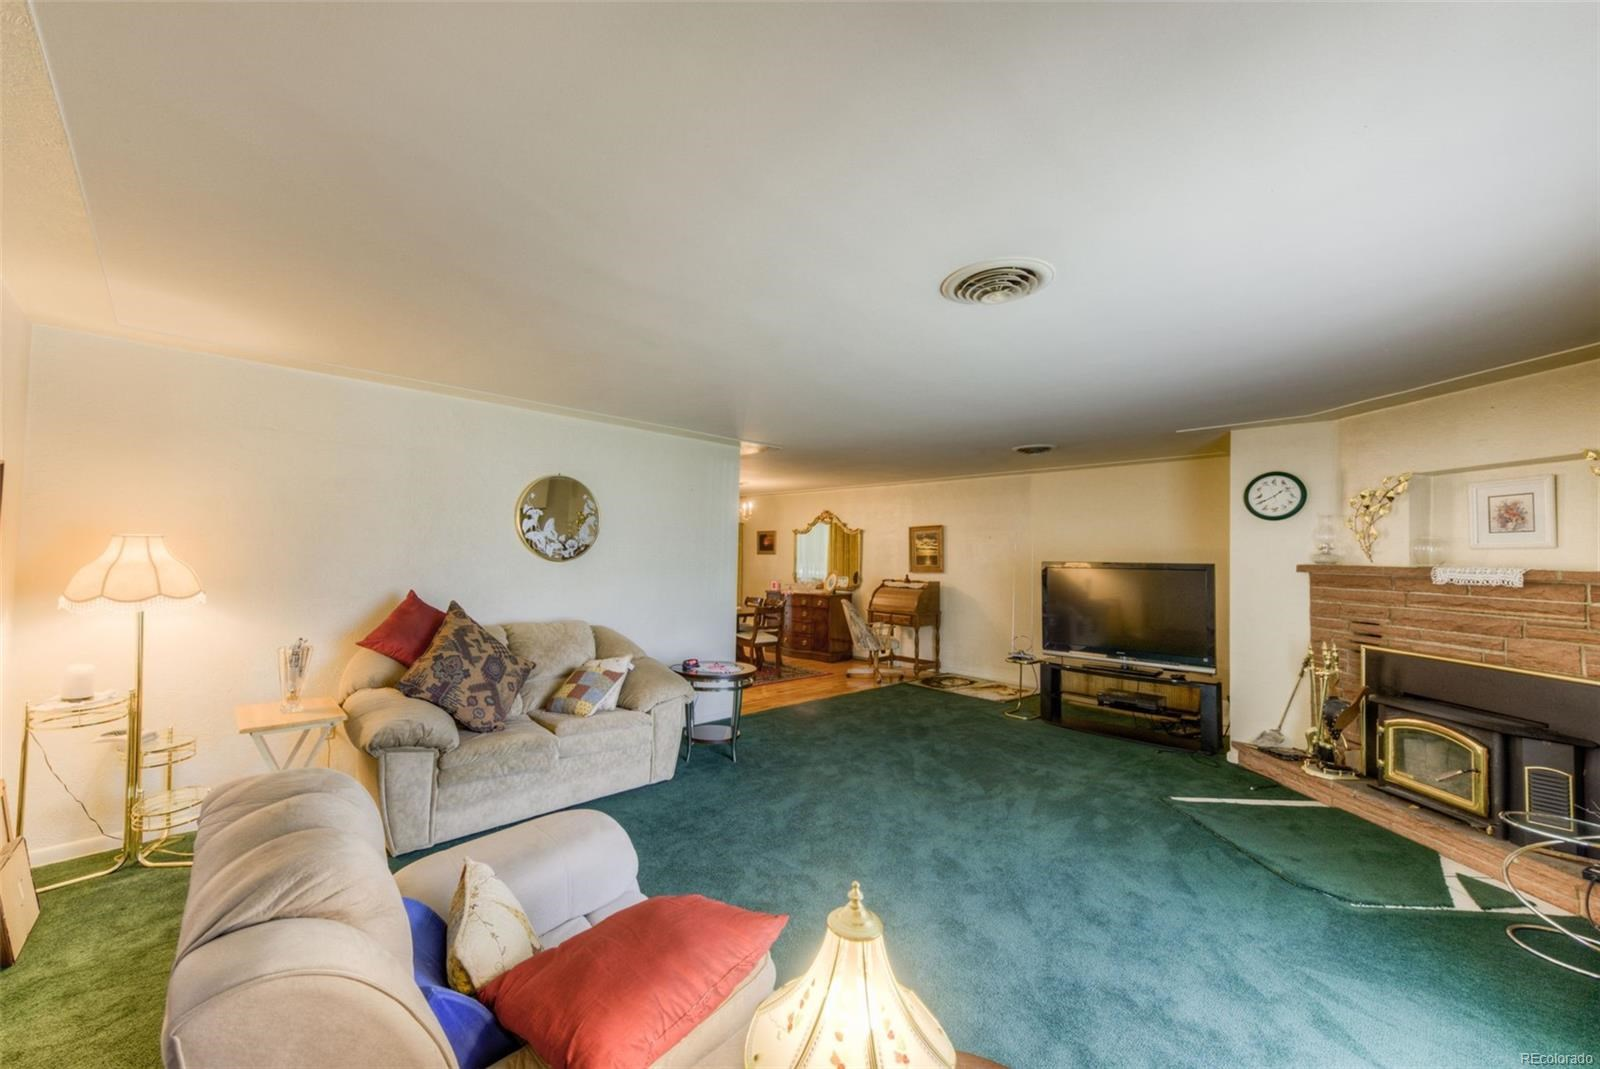 MLS# 5735873 - 15 - 45 S Brentwood Street, Lakewood, CO 80226